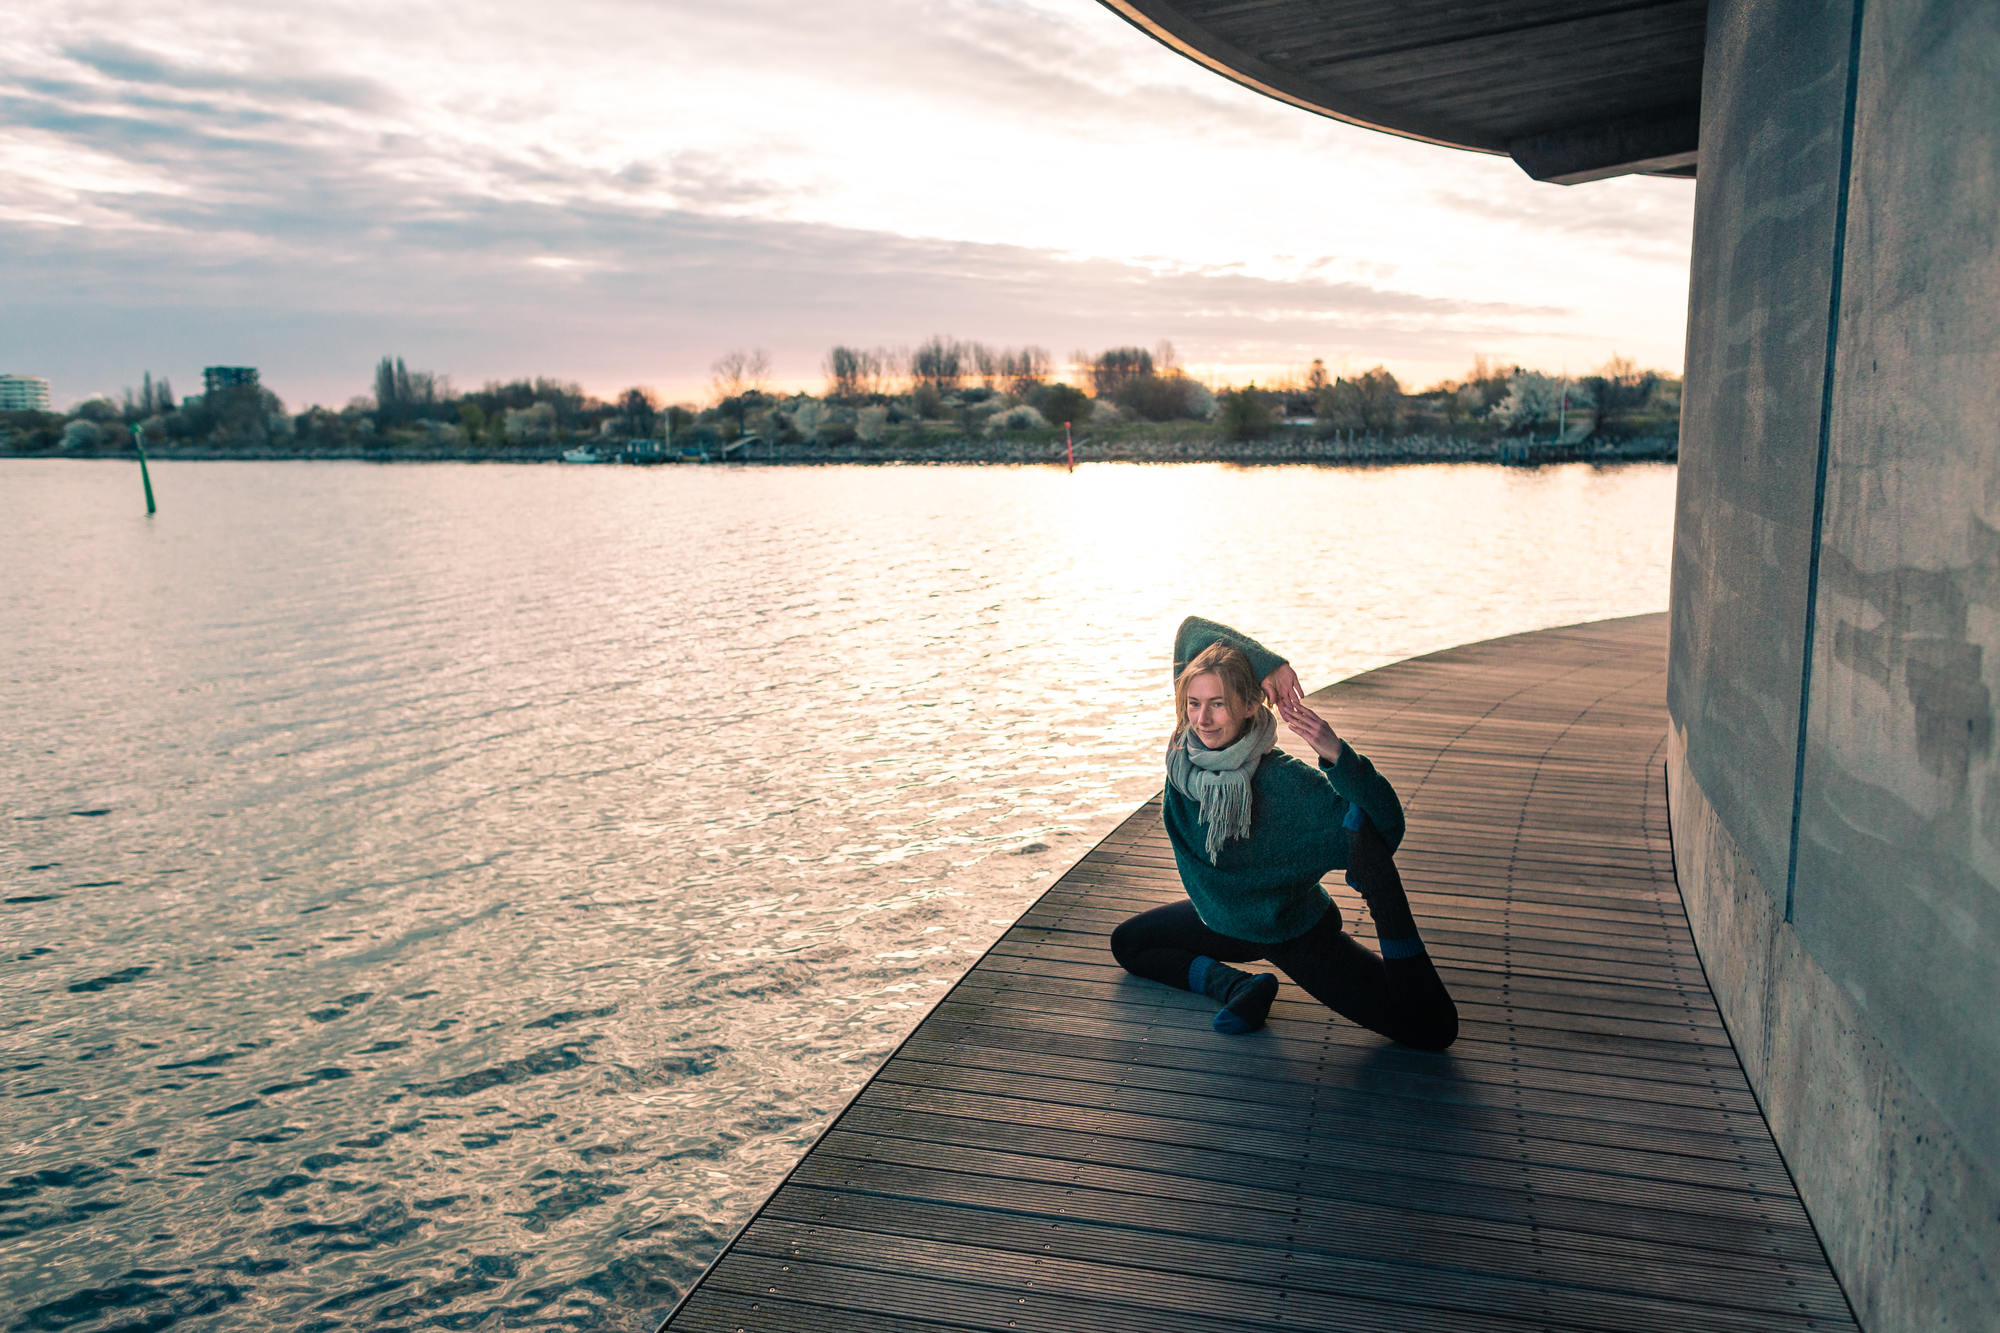 urban-yoga-photoshoot-copenhagen-silhouettes-poses-16